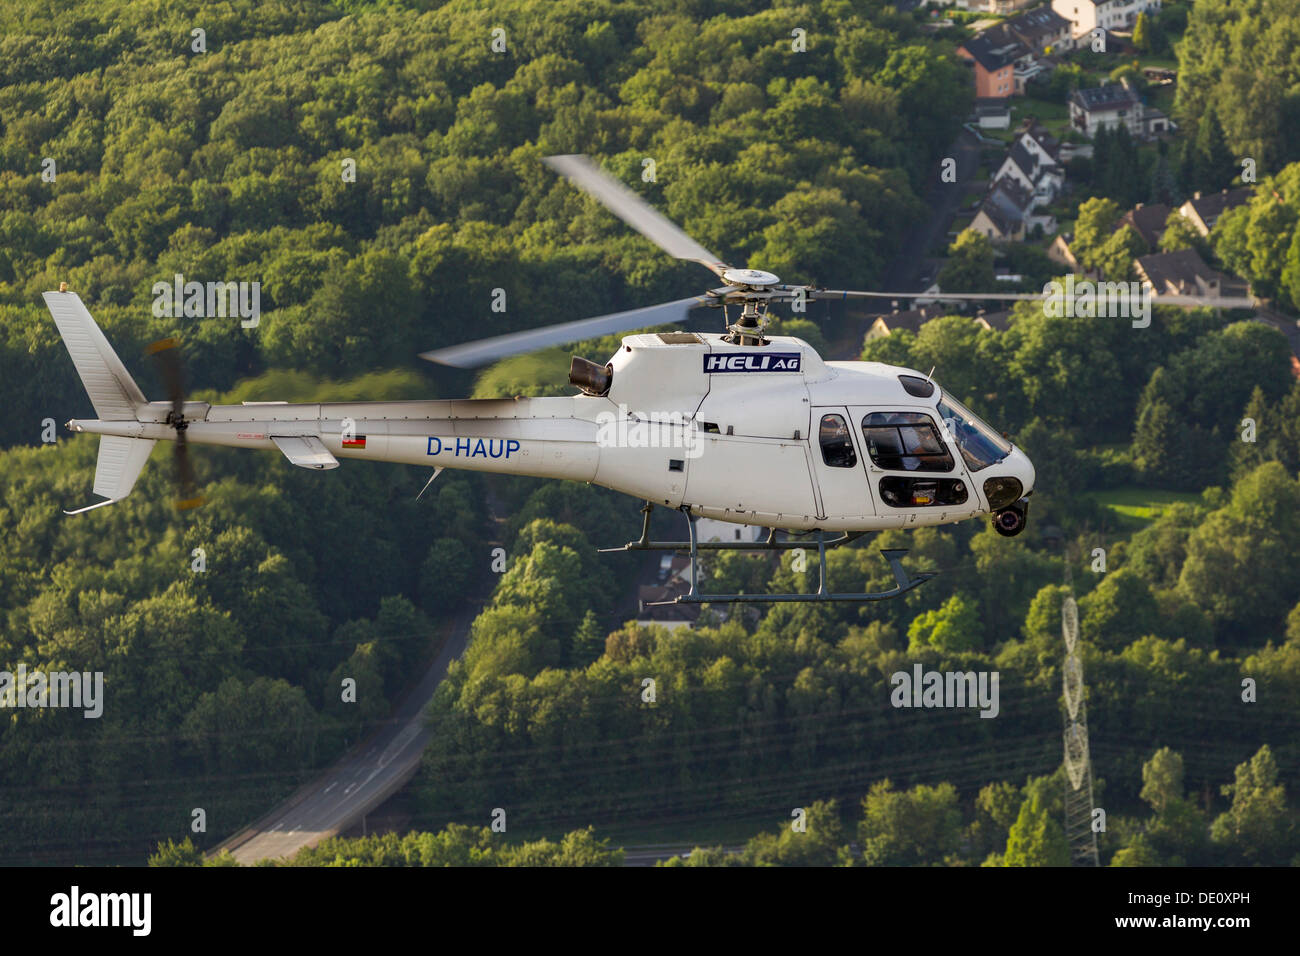 Aerial View Camera Helicopter With Video Heli AG High Resolution Gyro Stabilised HD System Witten Ruhr Area